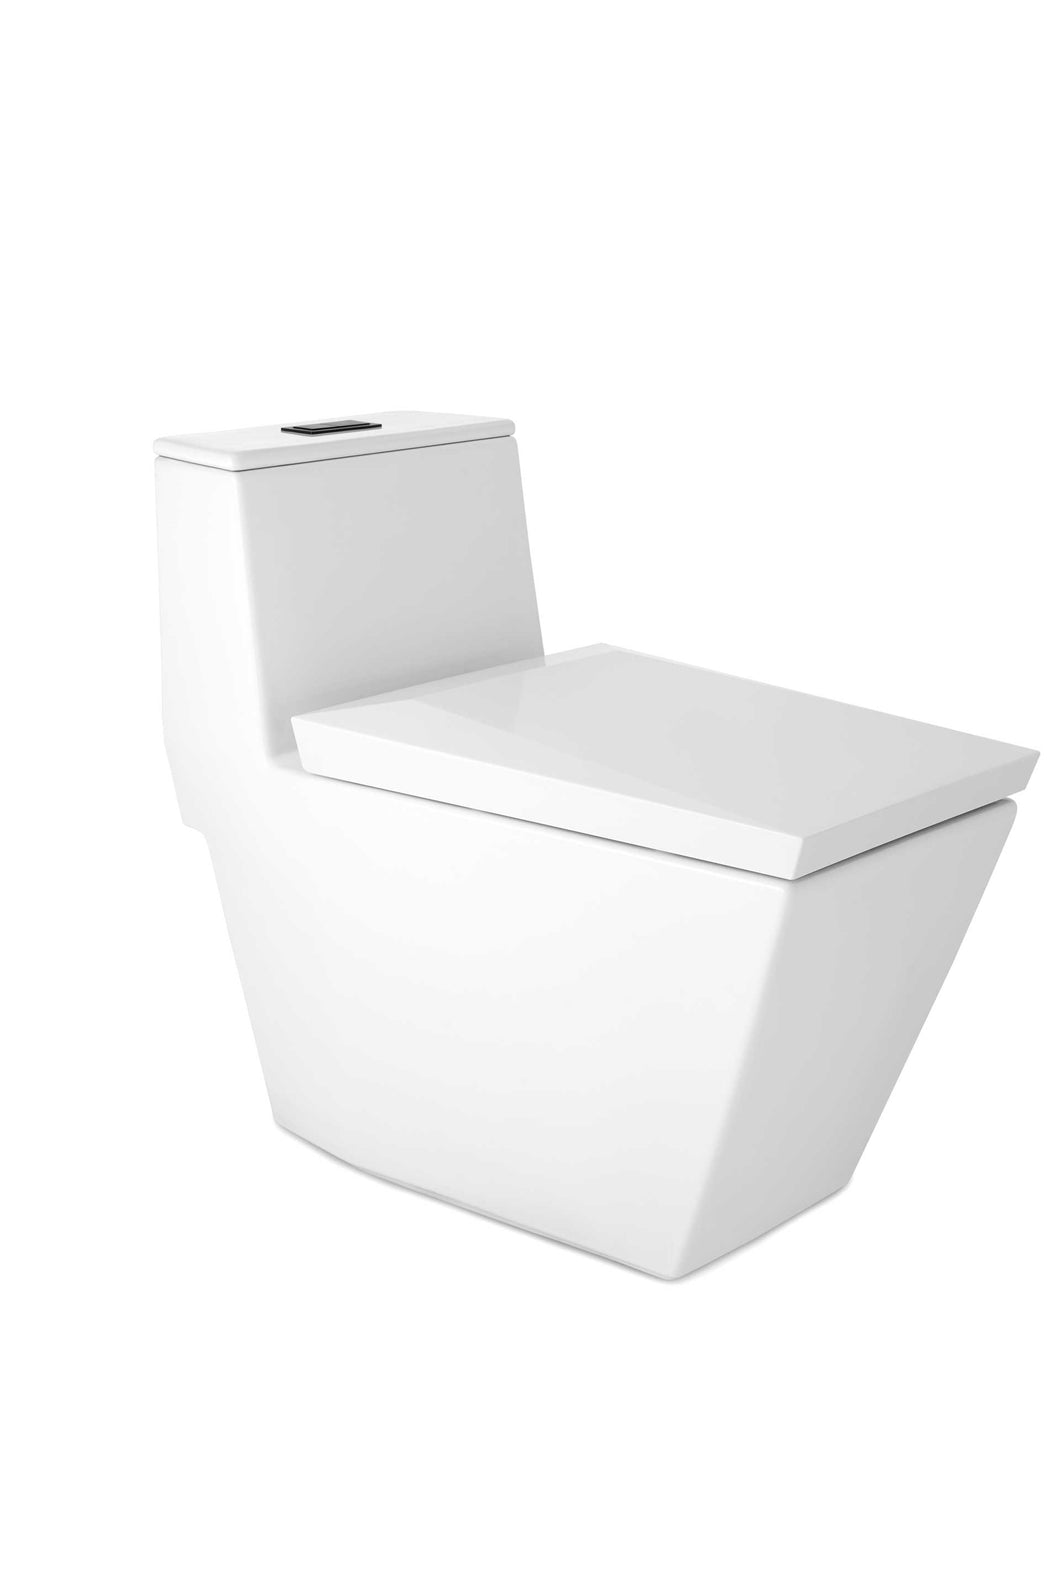 Cotto Skive One Piece Watercloset C102807